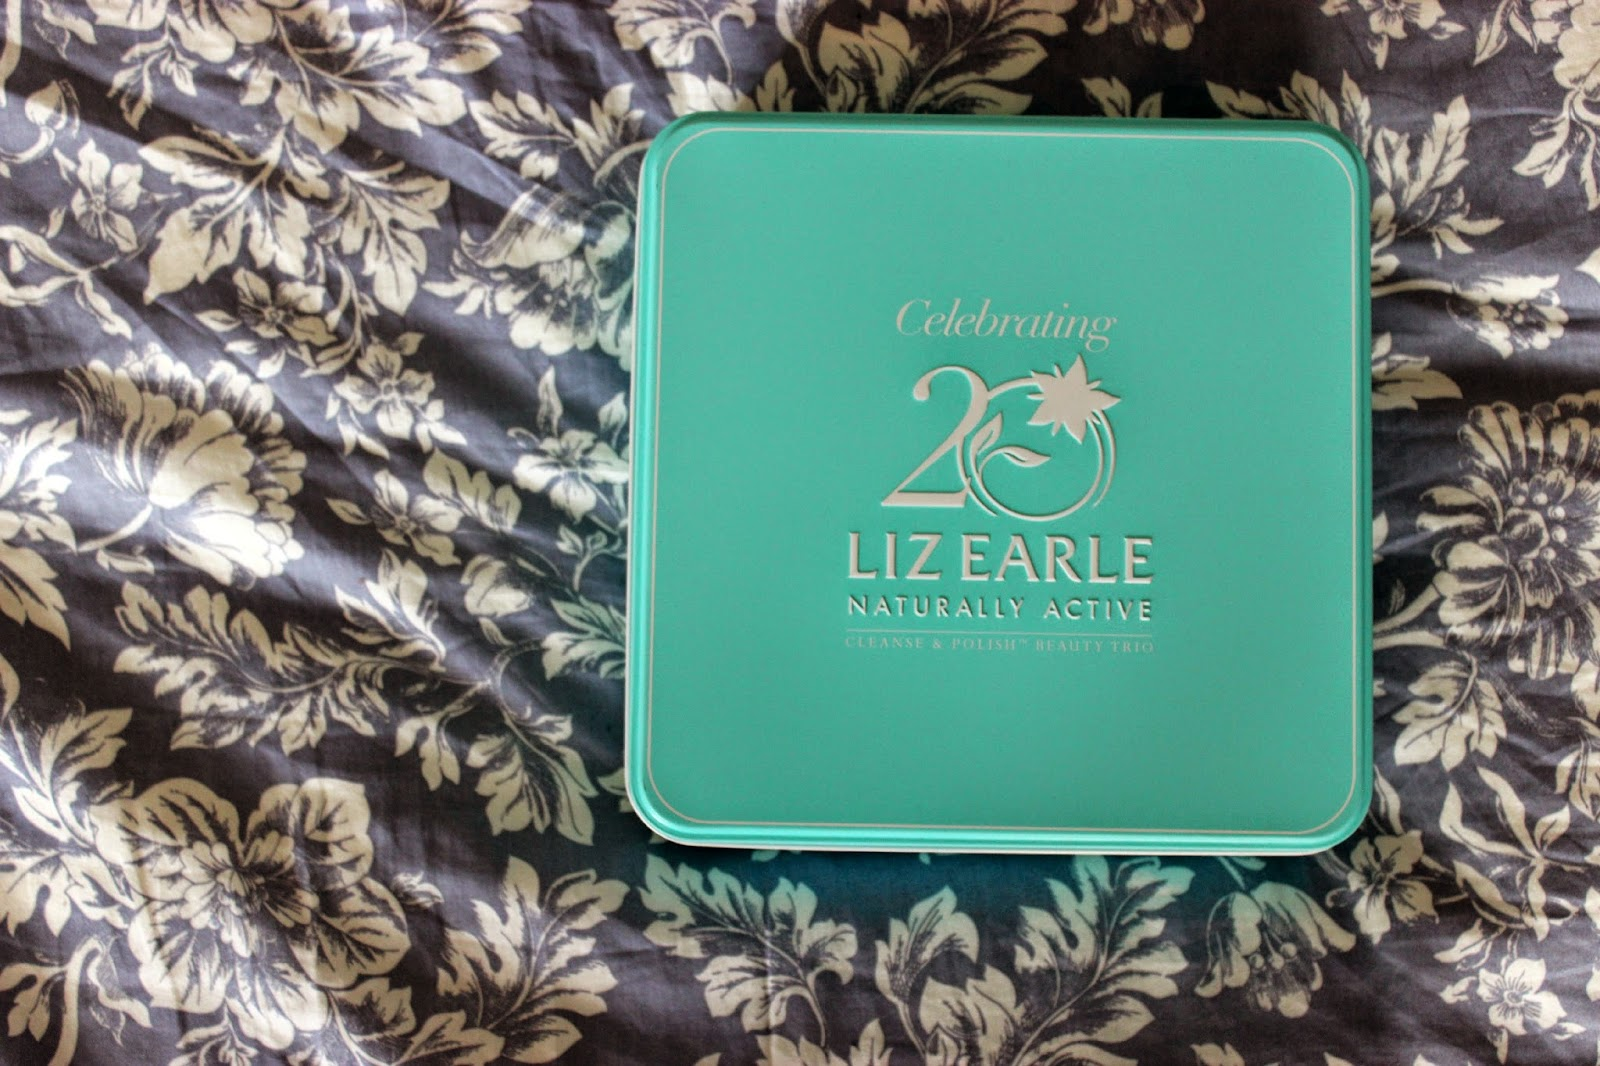 Picture of Liz Earle Cleanse & Polish Beauty Trio Tin